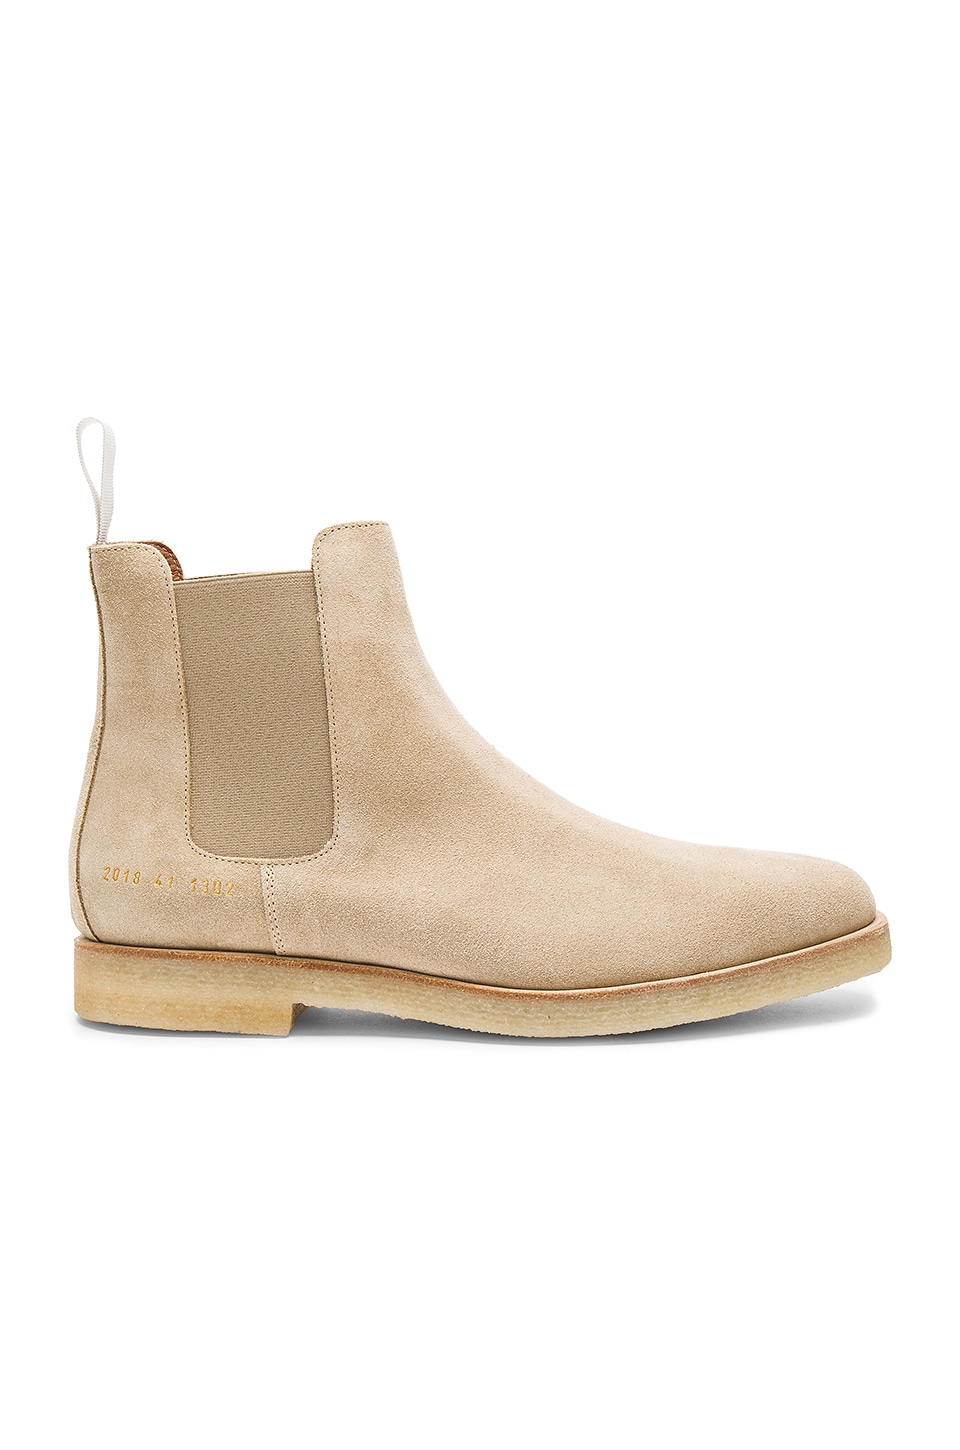 Common Projects Chelsea Suede Boot in Tan